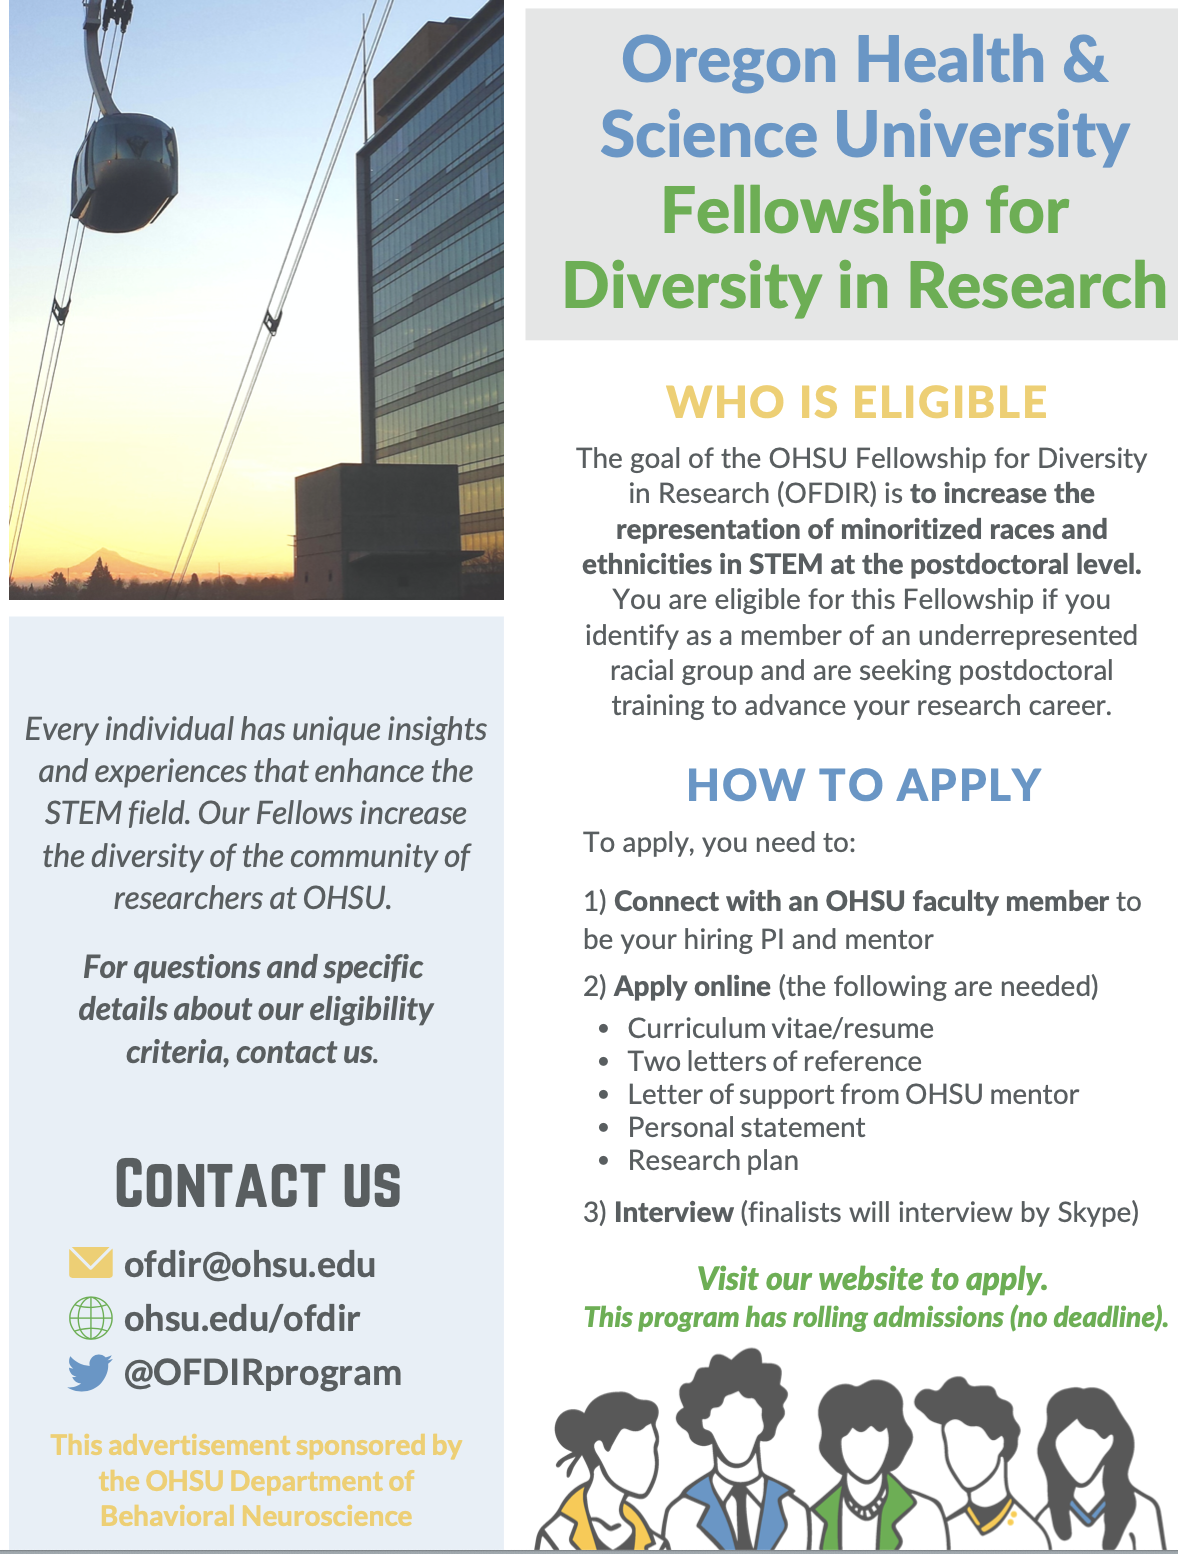 OHSU Fellowship for Diversity in Research Information